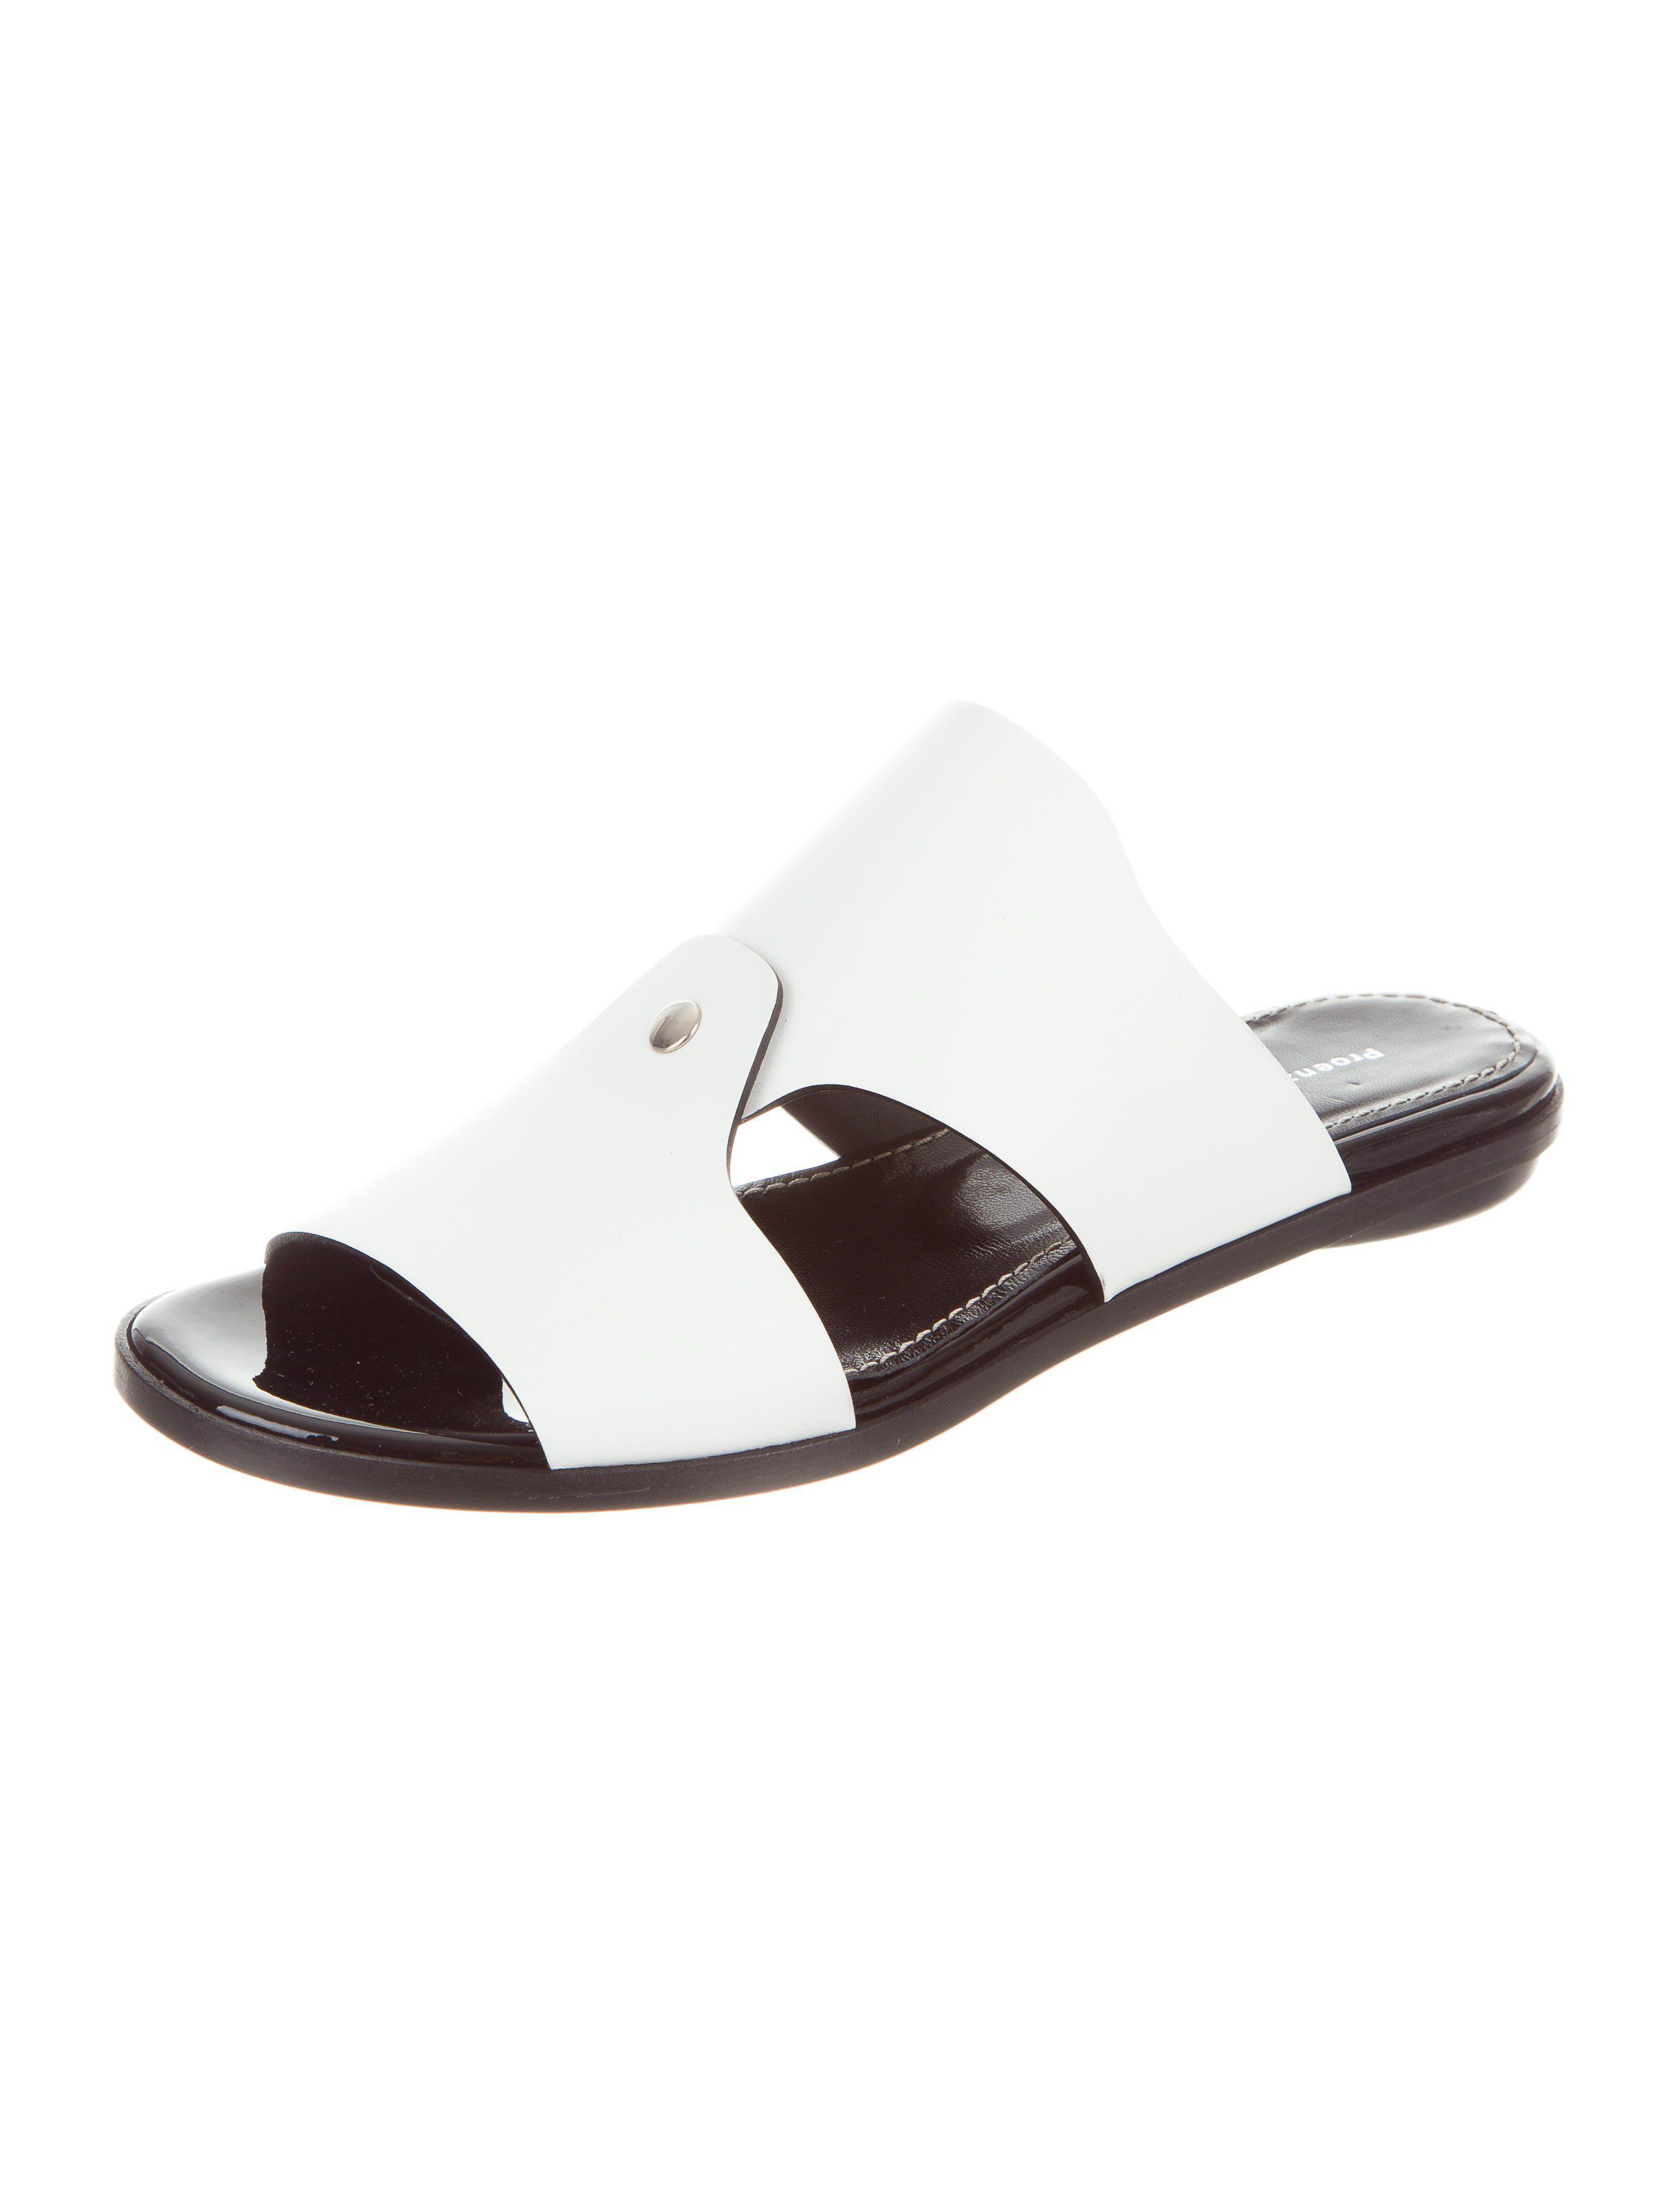 Proenza Schouler Leather Slide Sandals w/ Tags 2014 newest order cheap price outlet low price latest cheap price cheap online store Manchester p7QkmTh